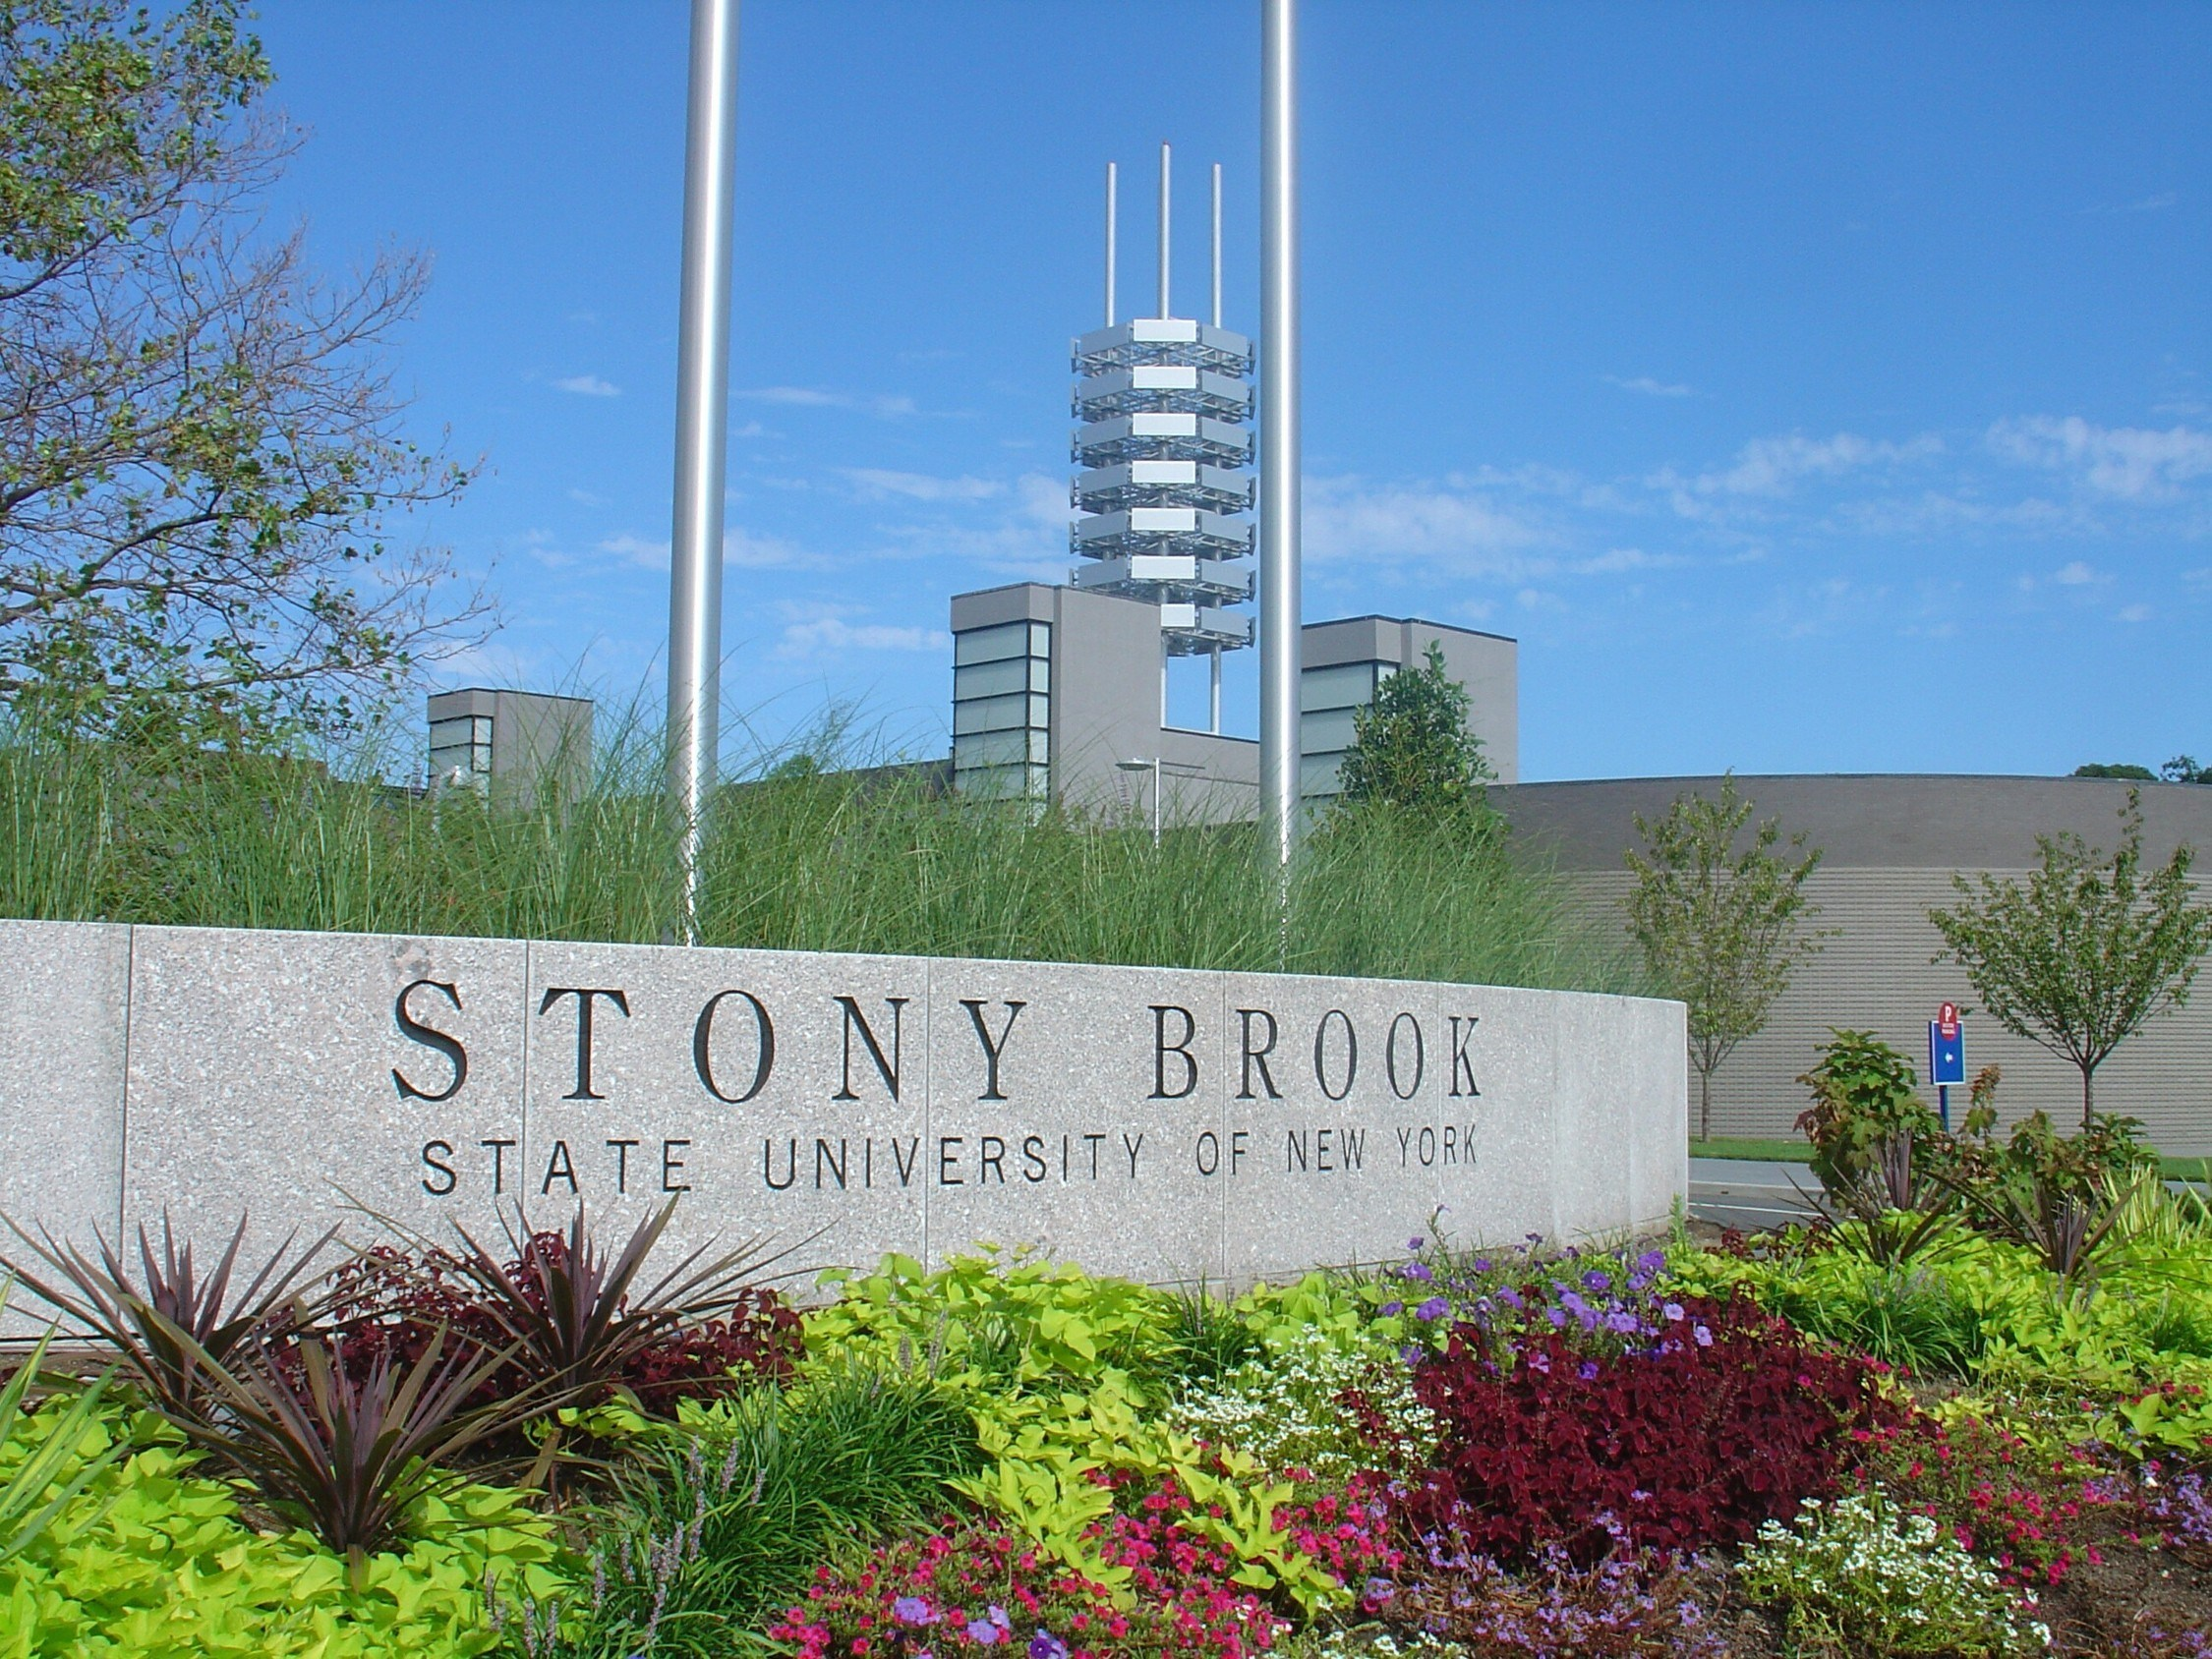 Stony Brook University: Prepared for Disaster